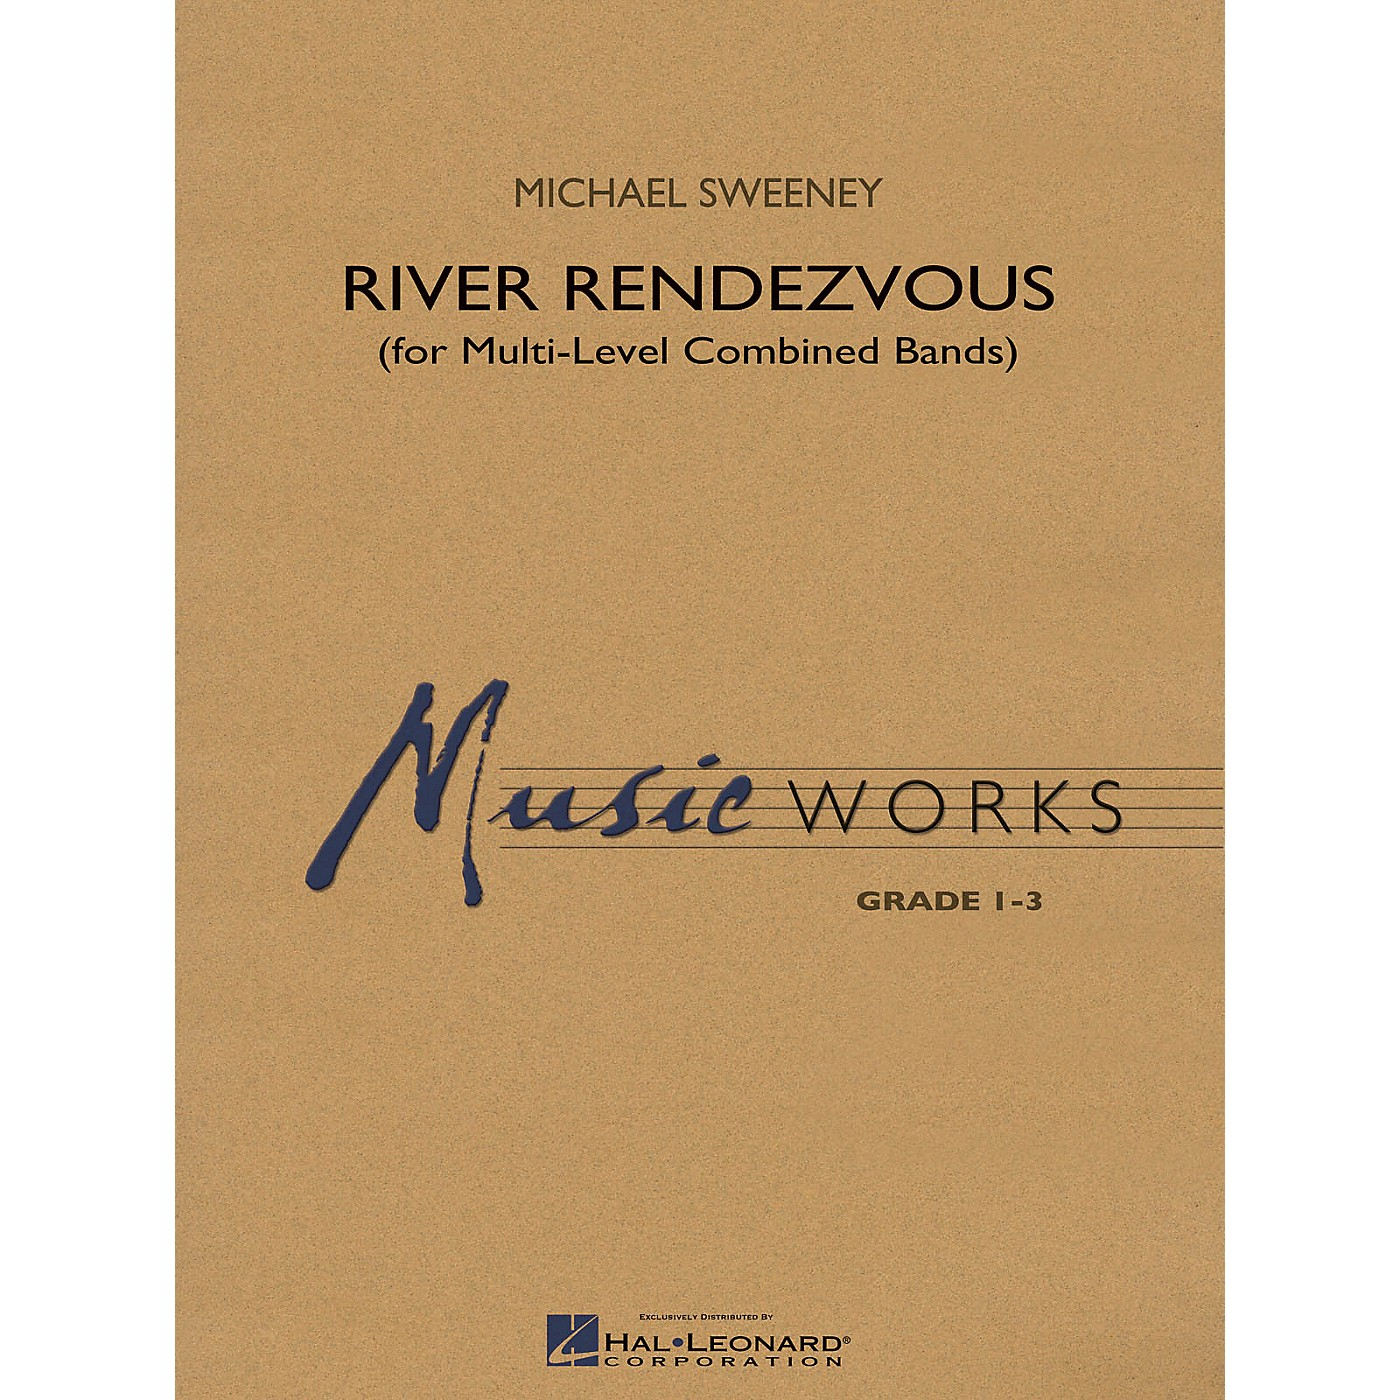 Hal Leonard River Rendezvous (for Multi-Level Combined Bands) Concert Band Level 3 Composed by Michael Sweeney thumbnail